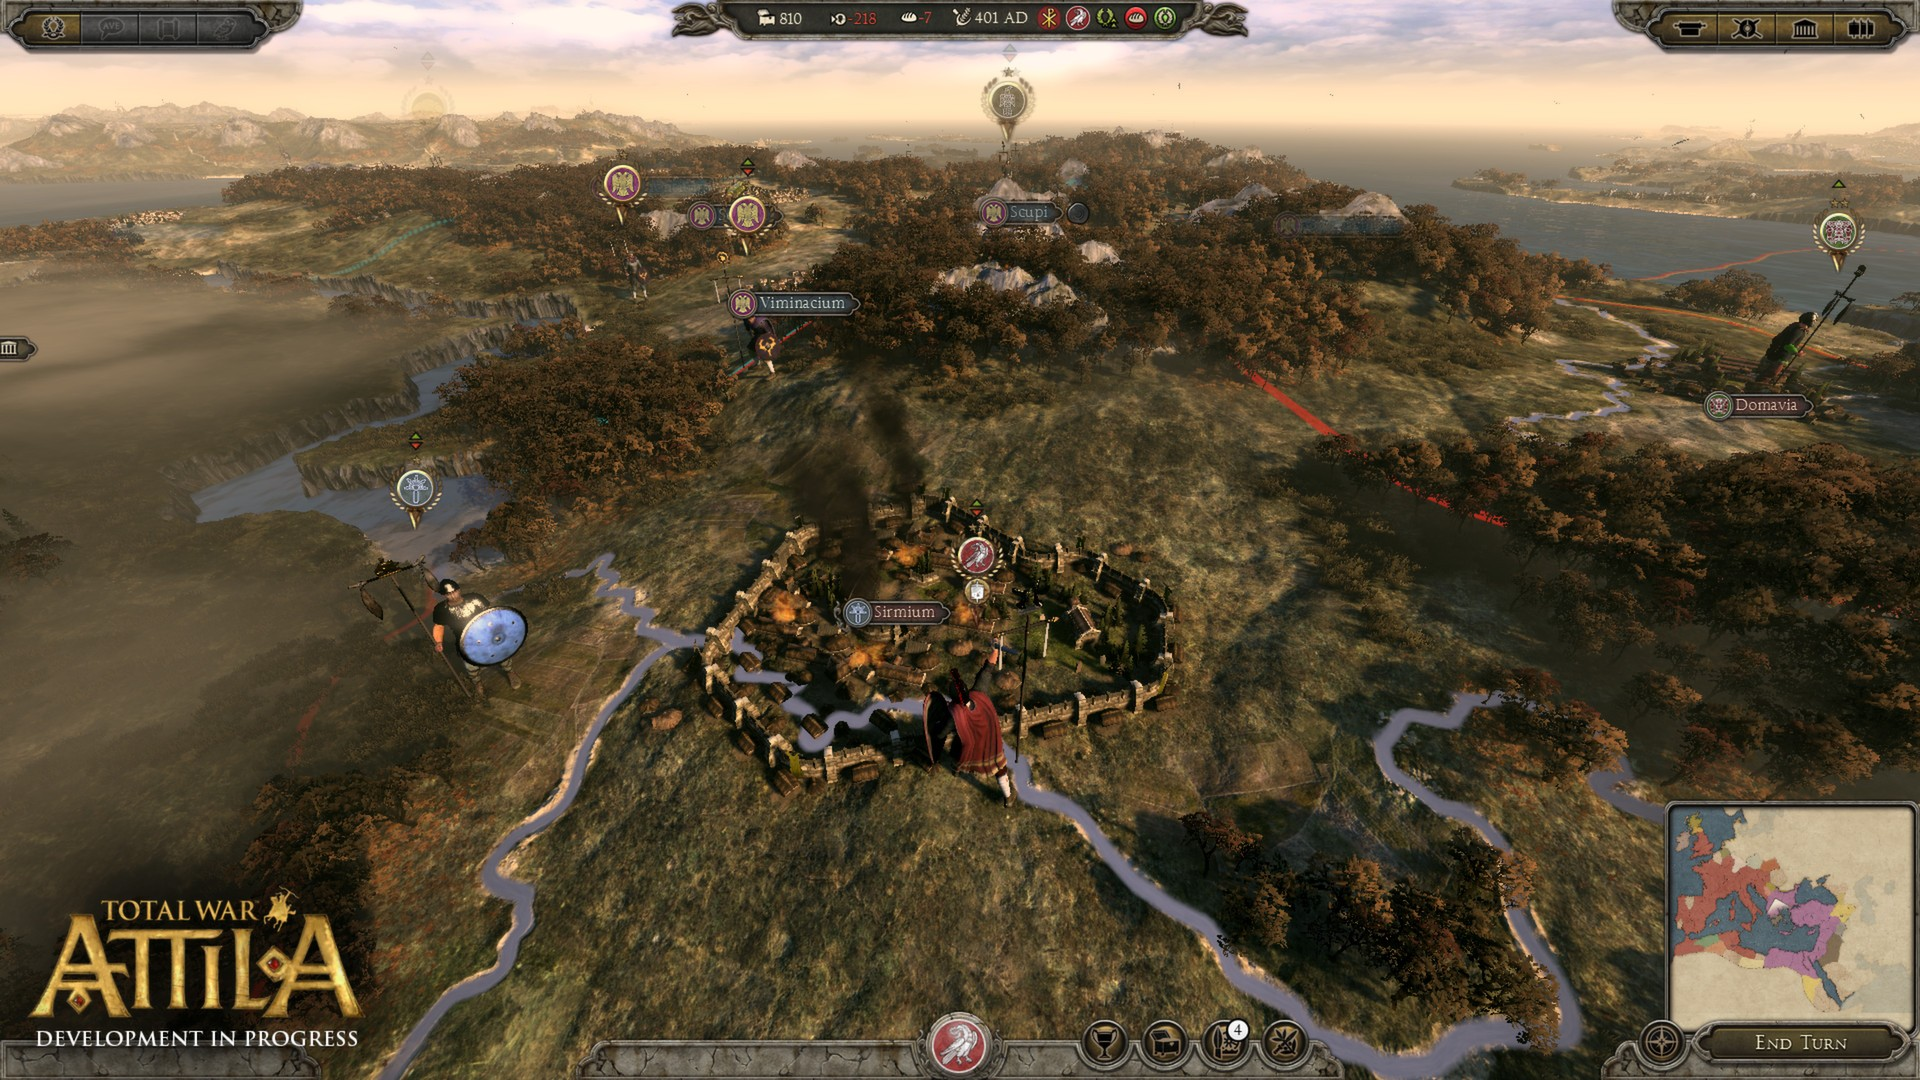 Total War: ATTILA [v 1.6.0 + DLCs] (2015) PC - Скриншот 1